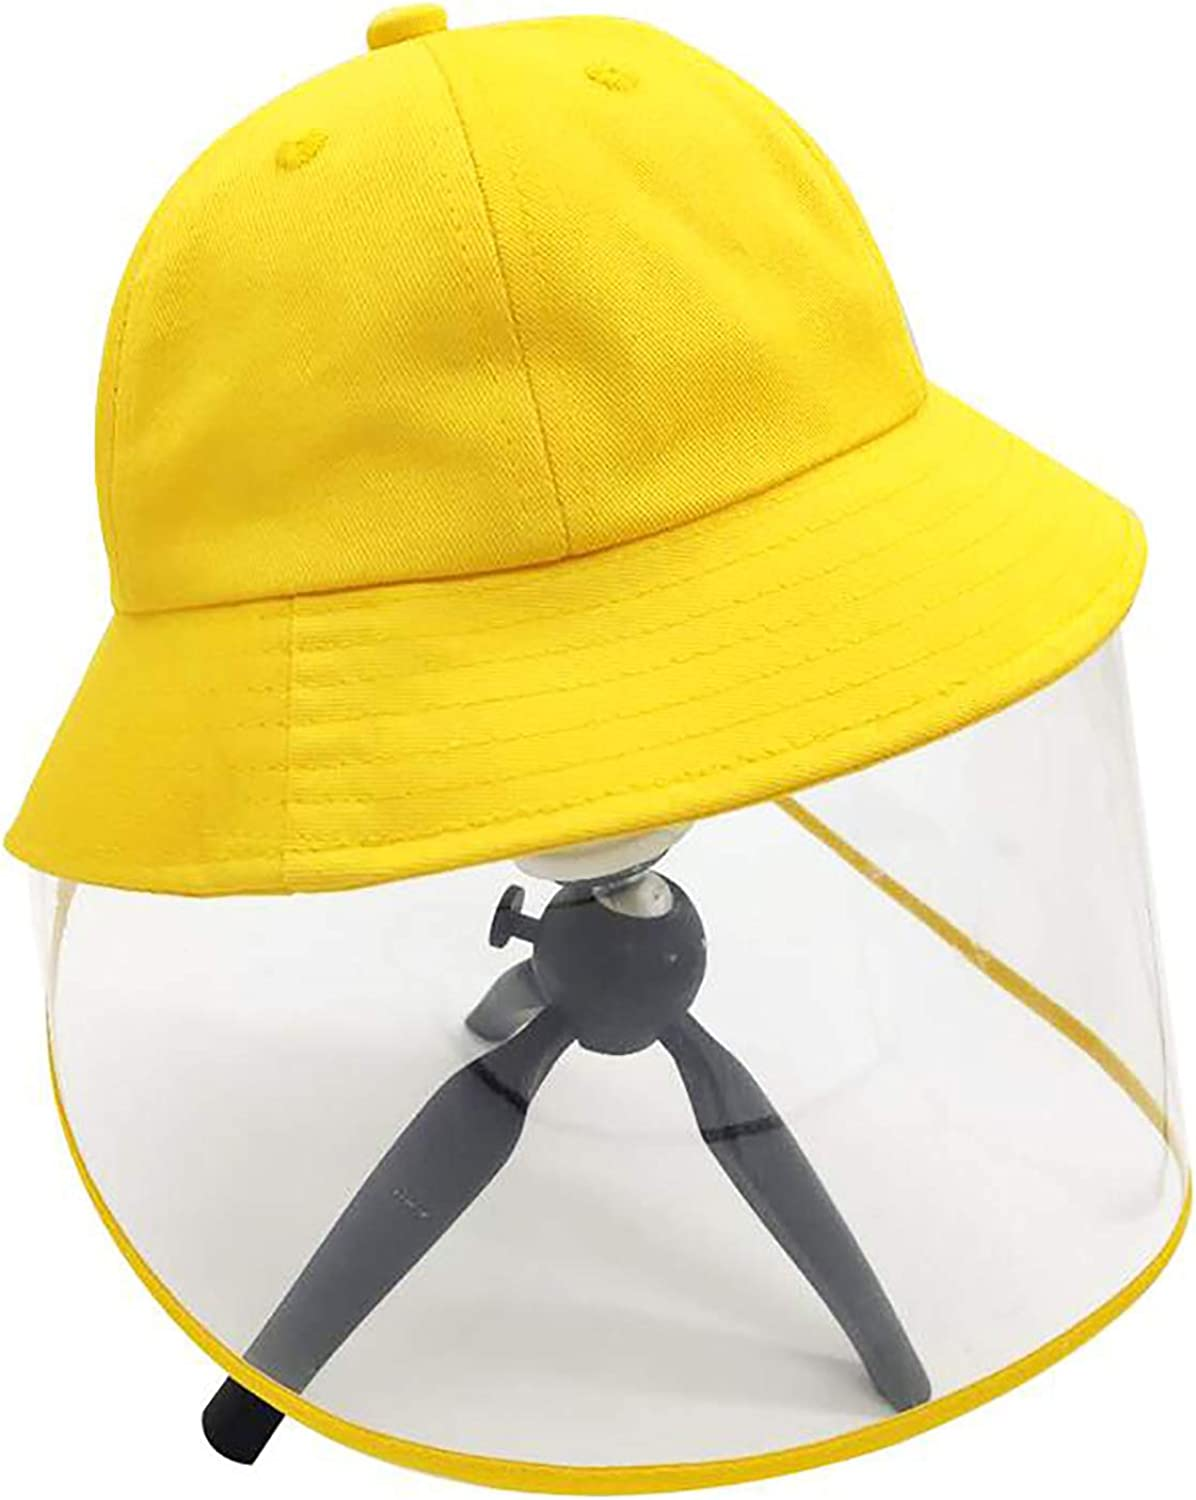 OneCut Removal Kids Fisherman Hat for 6-8 Years Old Children Black